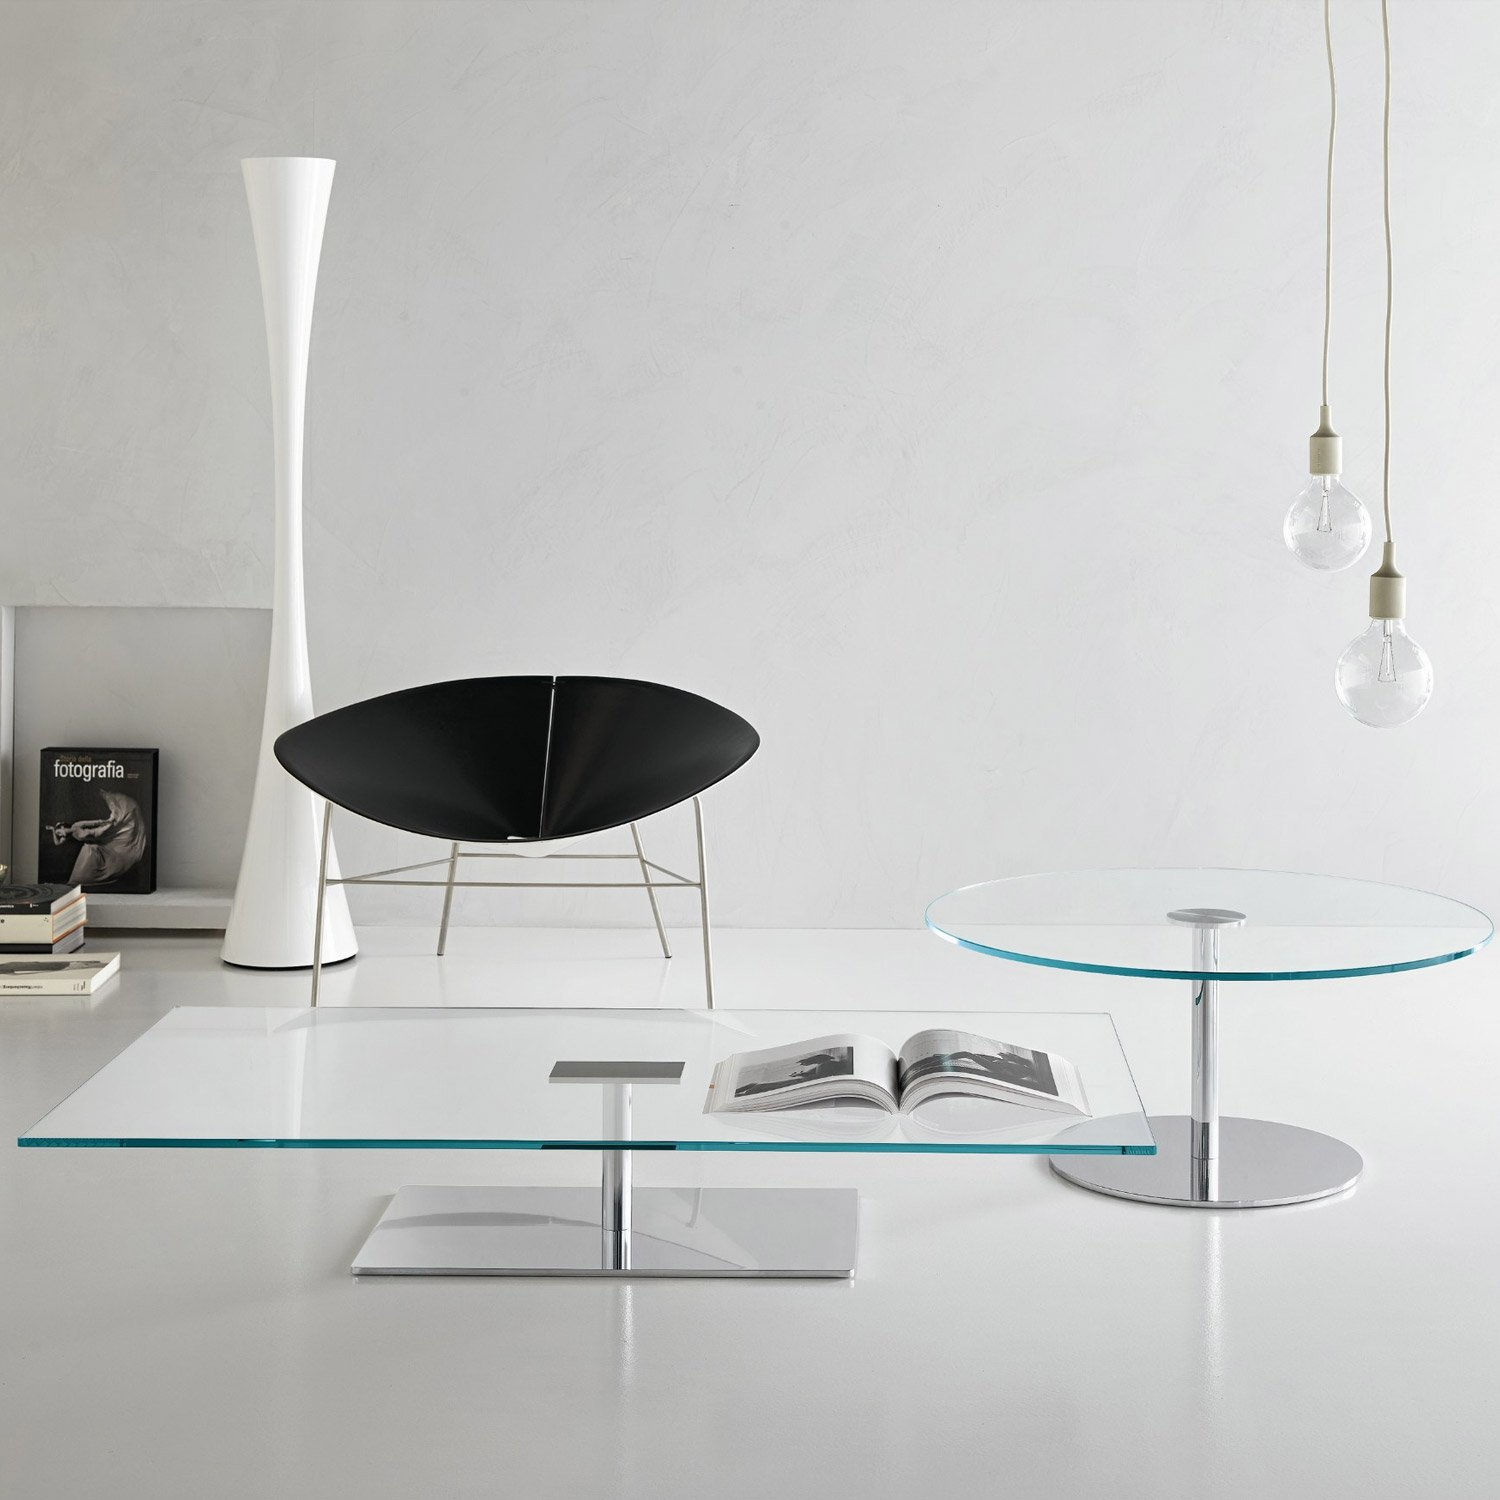 Farniente Rectangular Glass And Metal Coffee Table By Tonelli Klarity Glass Furniture